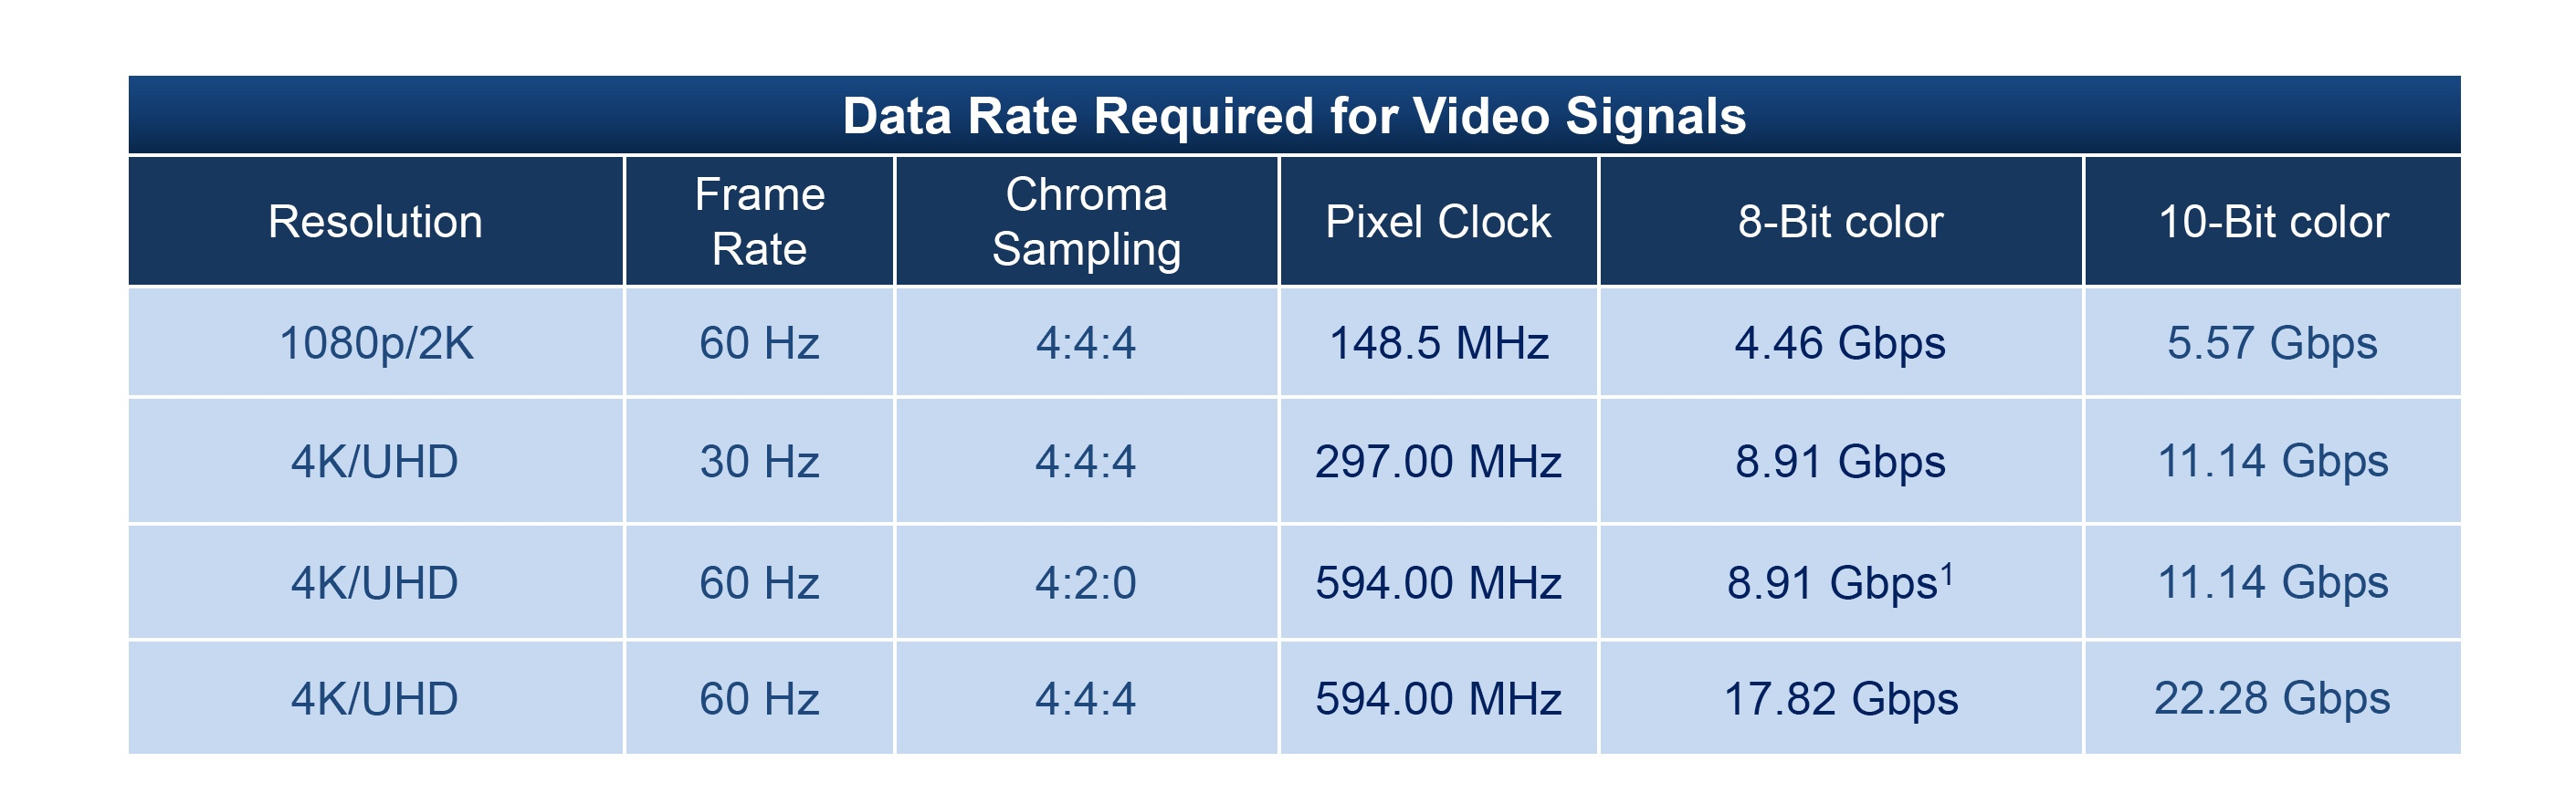 Data rate video signals